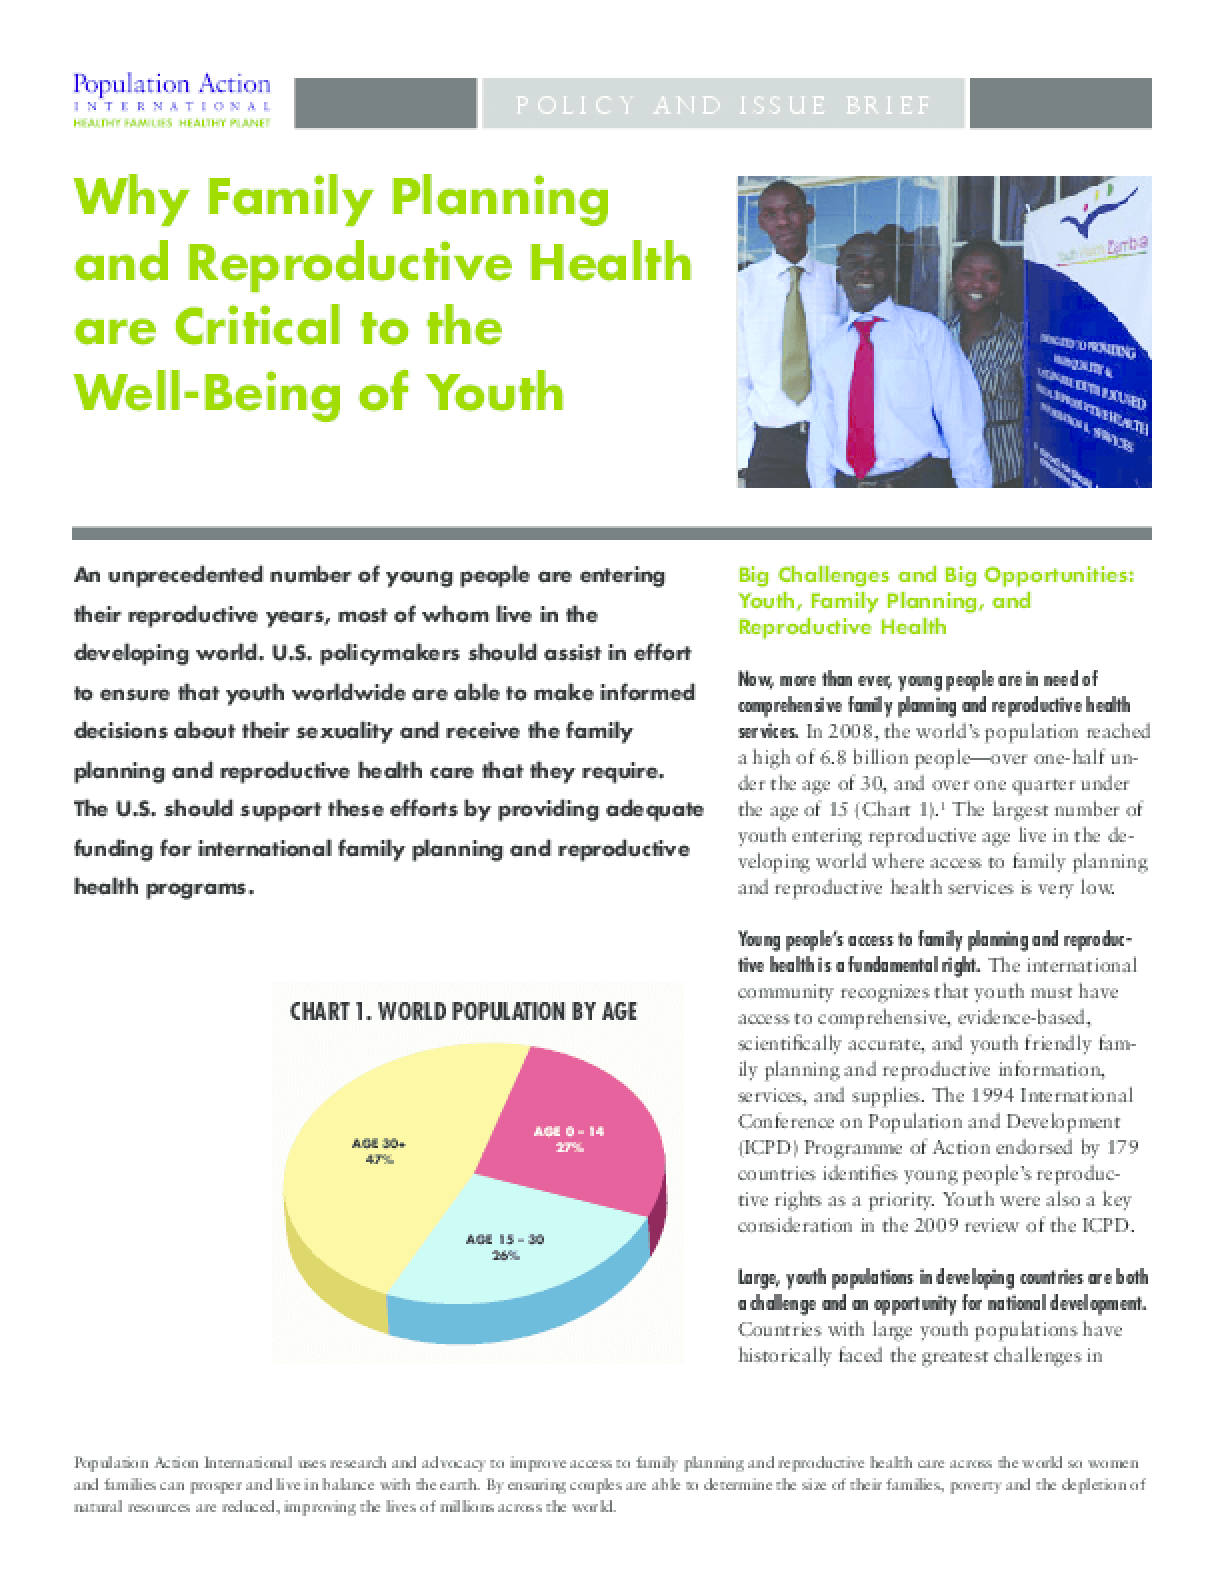 Why Family Planning and Reproductive Health are Critical to the Well-Being of Youth